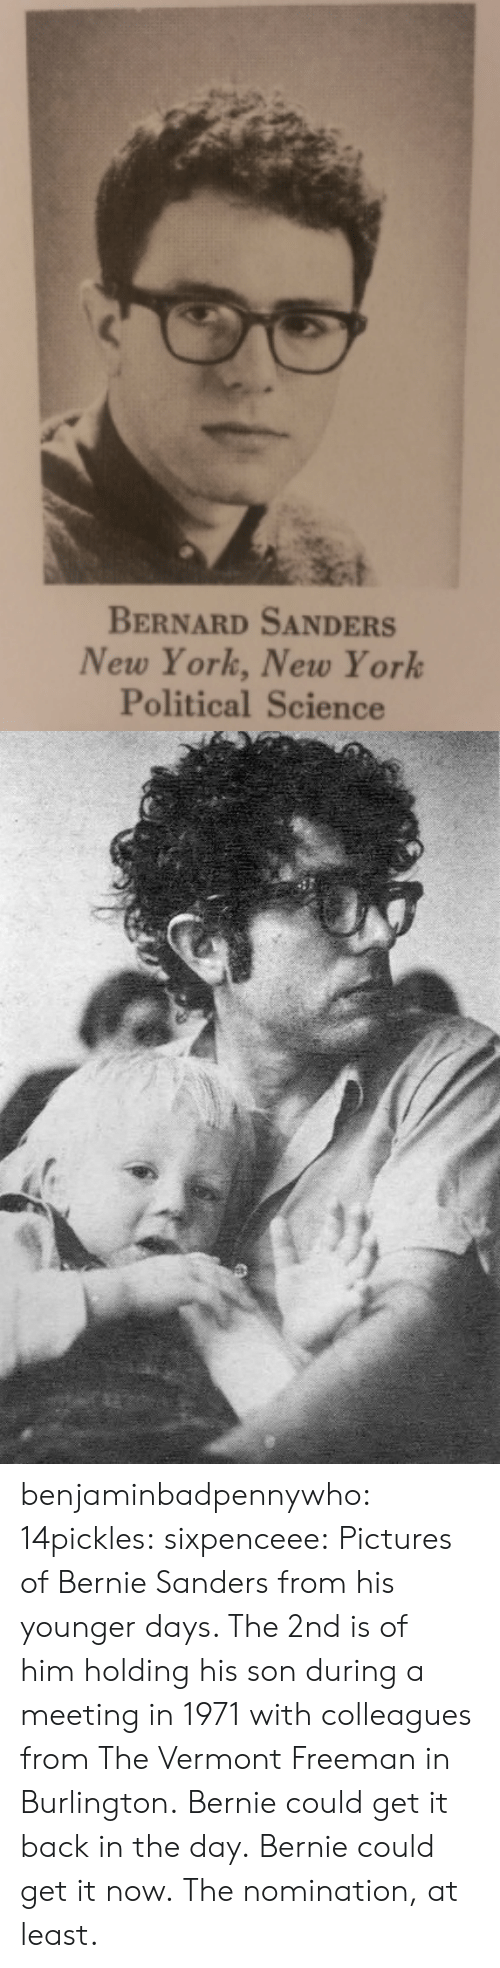 Sixpenceee: BERNARD SANDERS  New York, New York  Political Science benjaminbadpennywho:  14pickles:  sixpenceee:  Pictures of Bernie Sanders from his younger days. The 2nd is of himholding his son during a meeting in 1971 with colleagues from The Vermont Freeman in Burlington.  Bernie could get it back in the day.  Bernie could get it now. The nomination, at least.